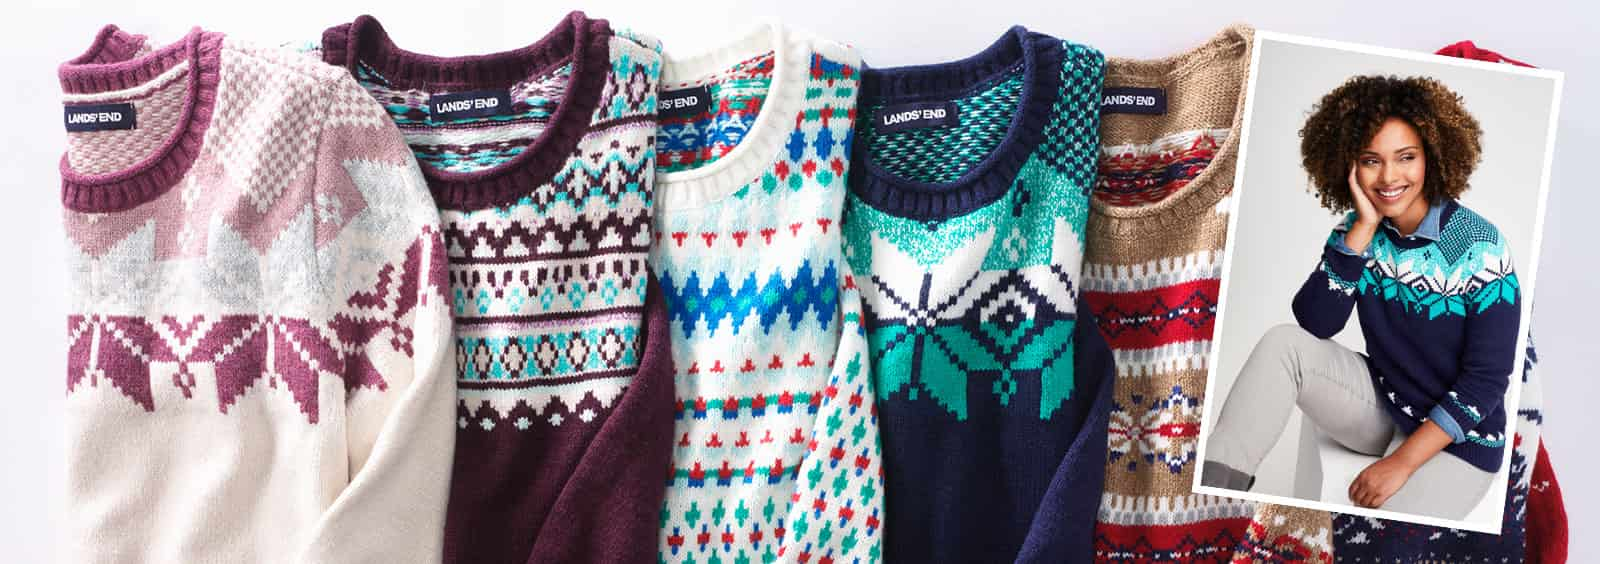 Tips for Choosing the Most Flattering Sweaters for Your Body Type